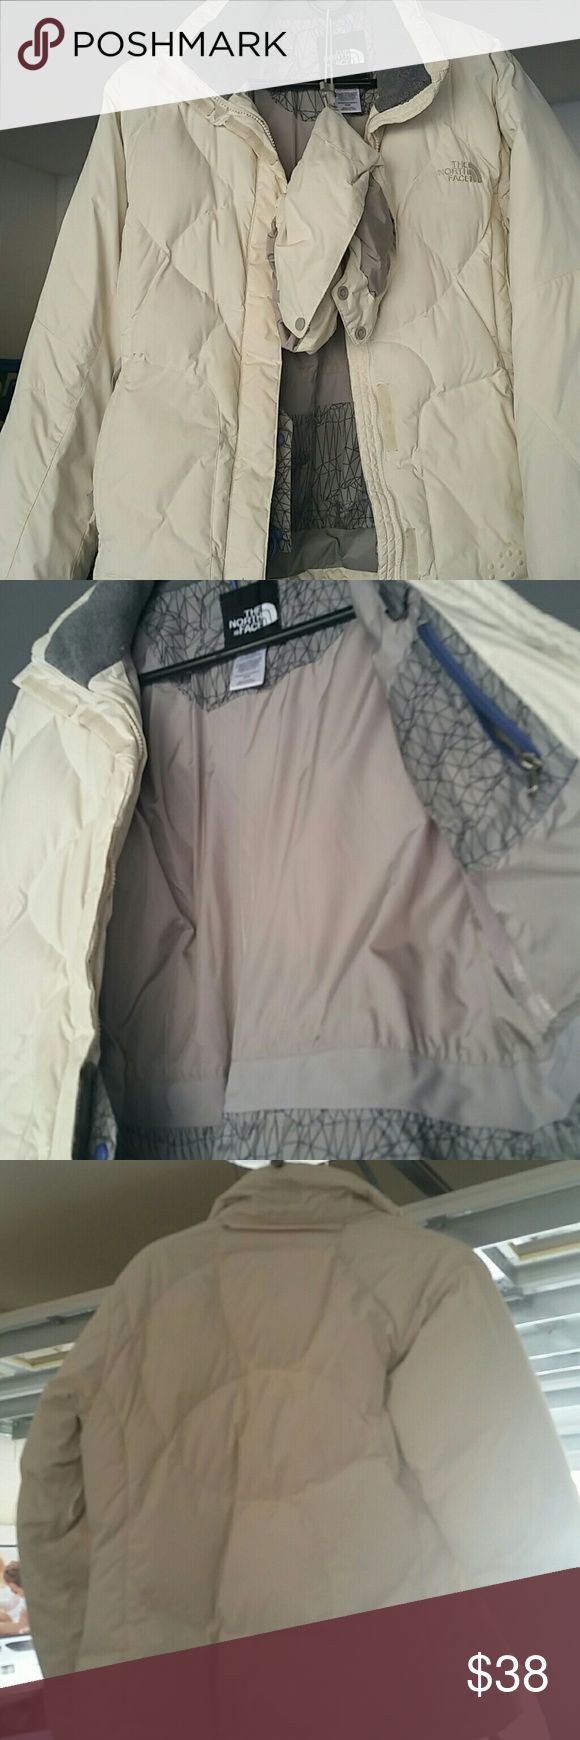 North Face winter jacket Very very warm.Perfect inside,a few very tiny spots on front left area (shown in pic).No rips or tares. Comes with a detachable hood that zippers and snaps on. North Face Jackets & Coats Puffers